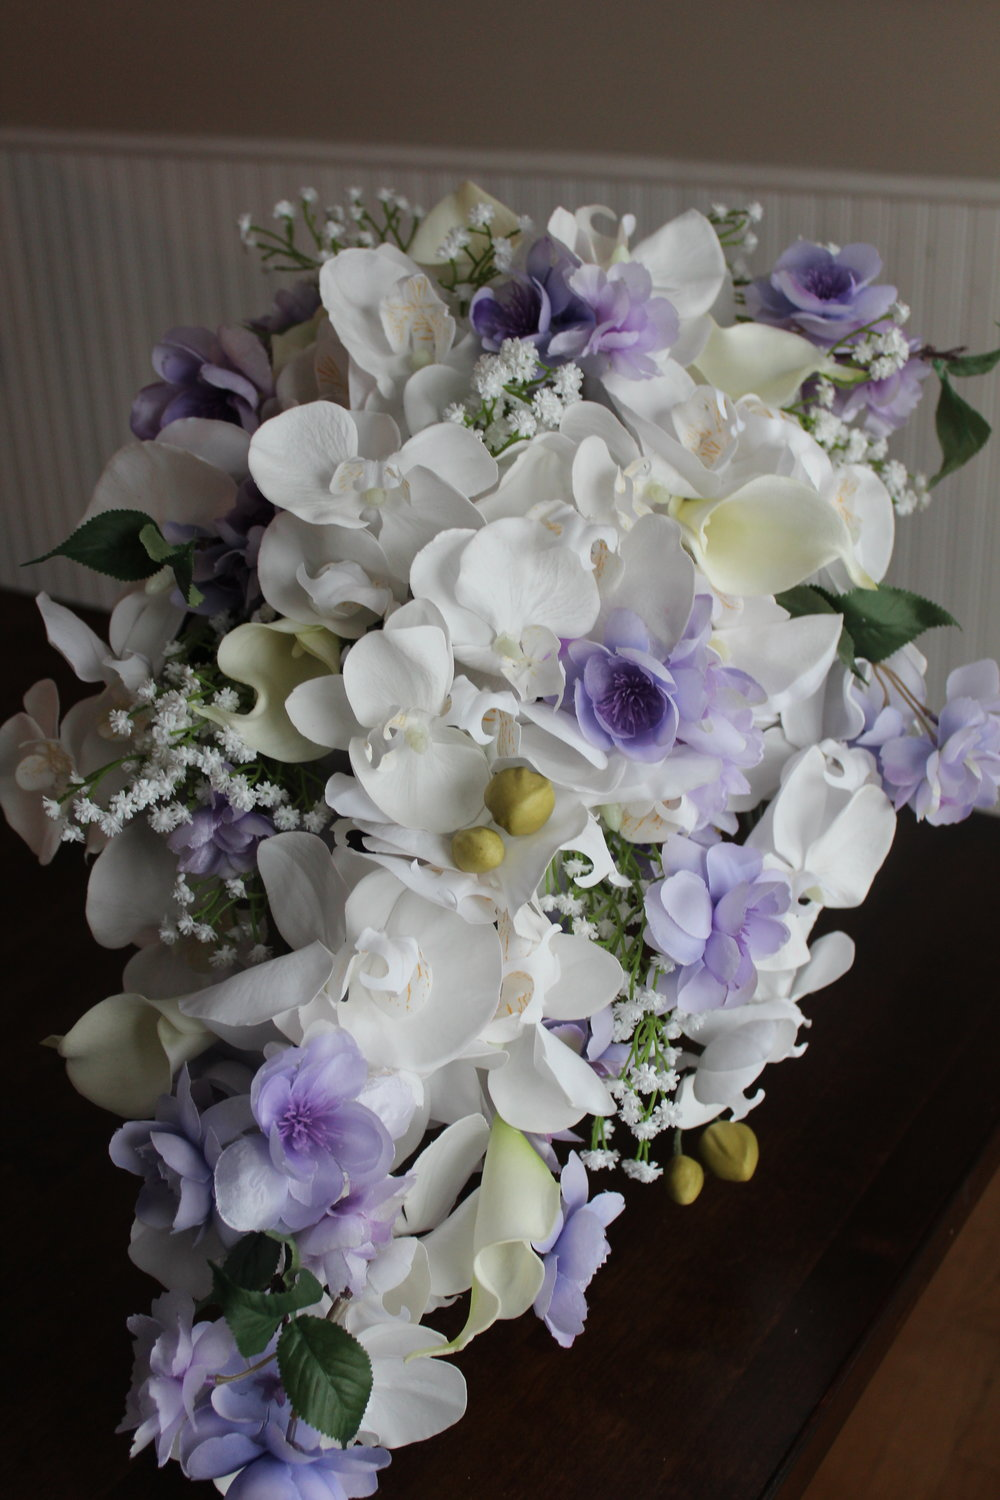 Orchids, Calla Lilies, lilac Blossoms, Baby's Breath